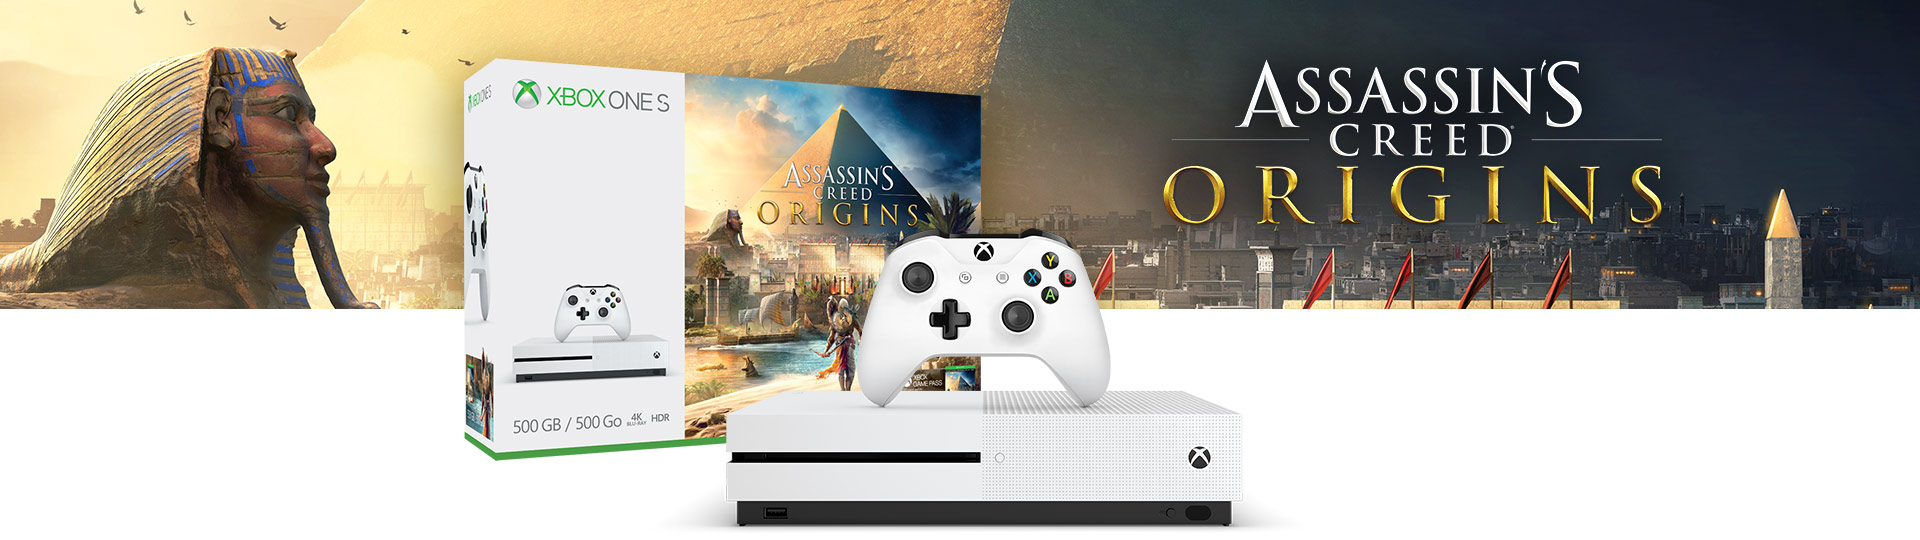 Paquete Assassin's Creed: Origins para Xbox One S (500 GB)